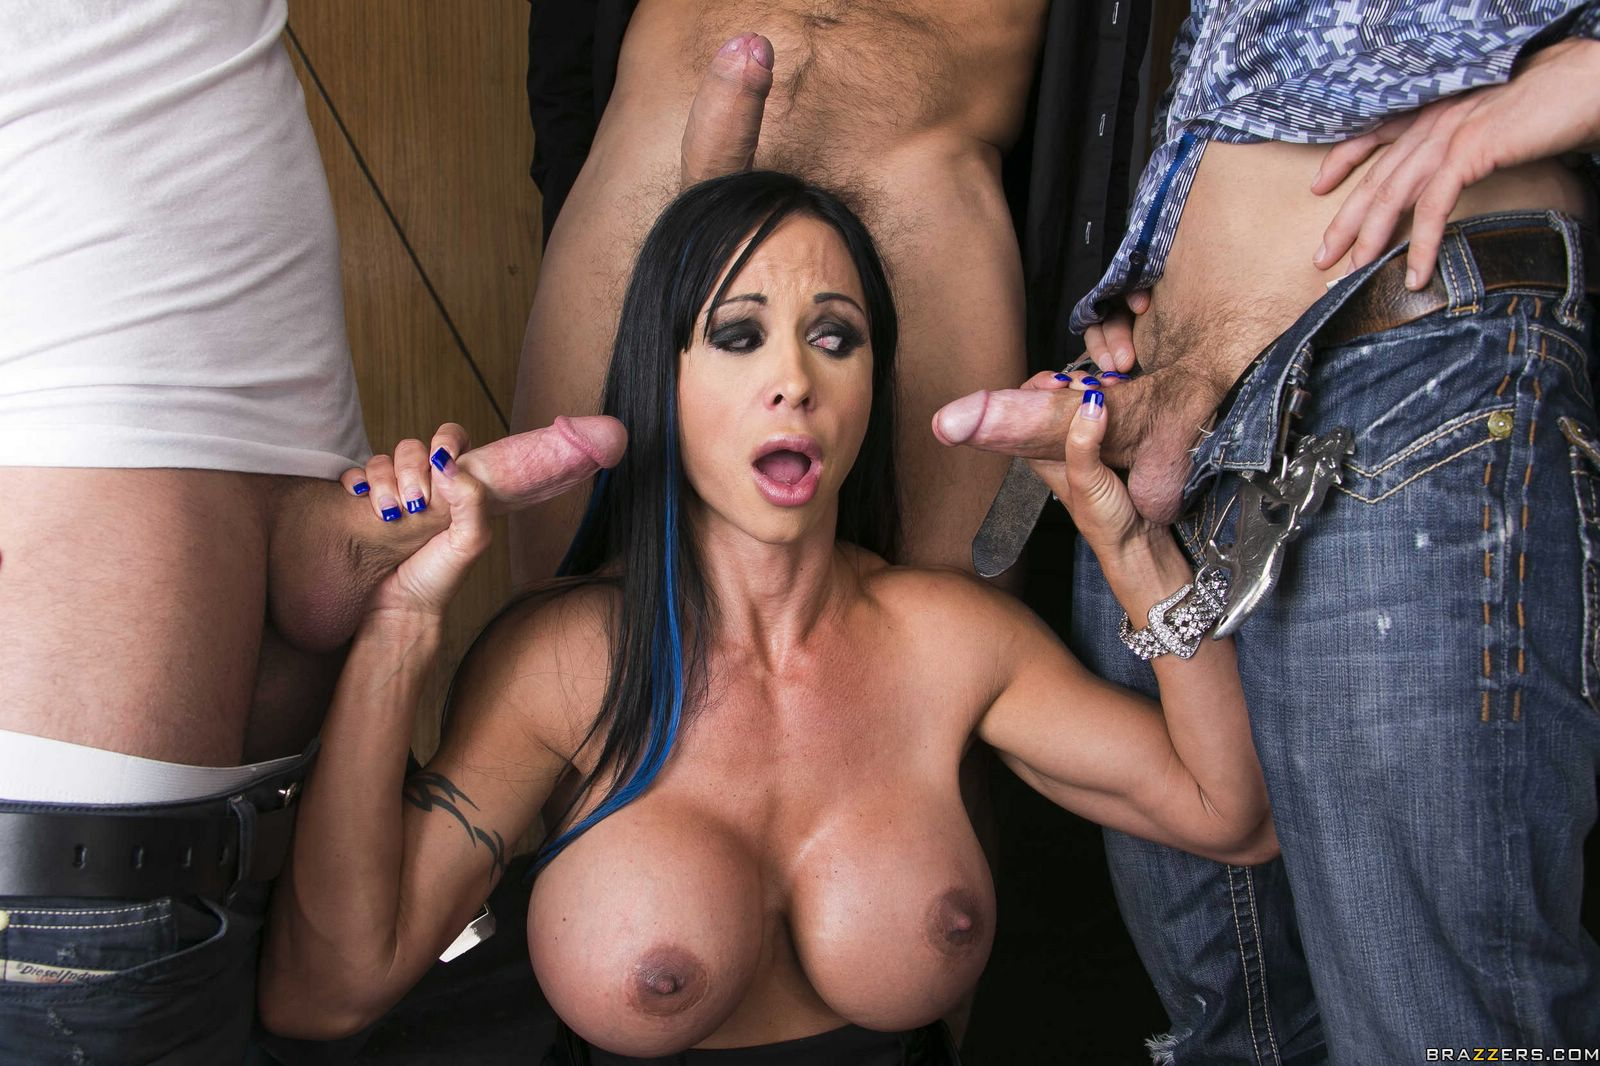 Jewels Jade Sucking And Fucking Three Huge Cocks At Once - My Pornstar Book-9913